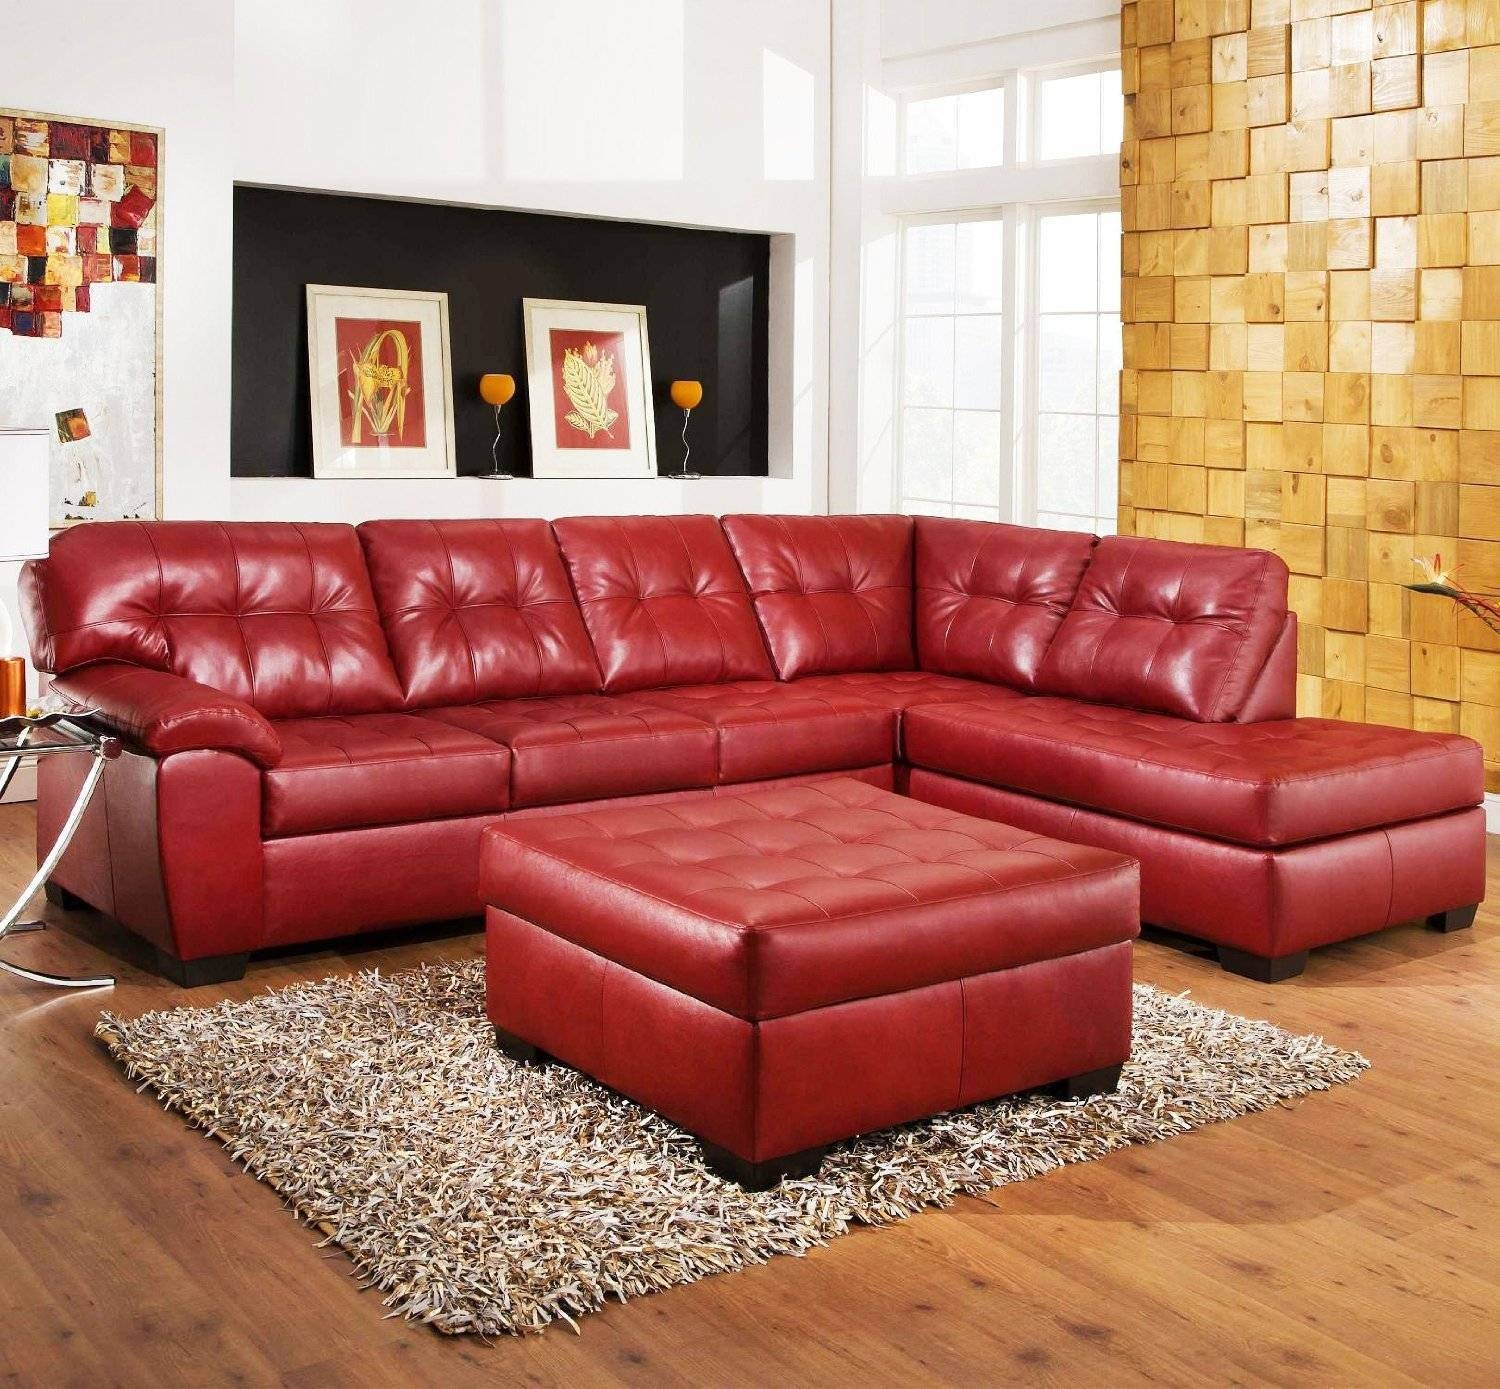 6 Red Sectional Sofas-Hot Upholstery Shades For The Fearless pertaining to Red Sectional Sleeper Sofas (Image 4 of 30)